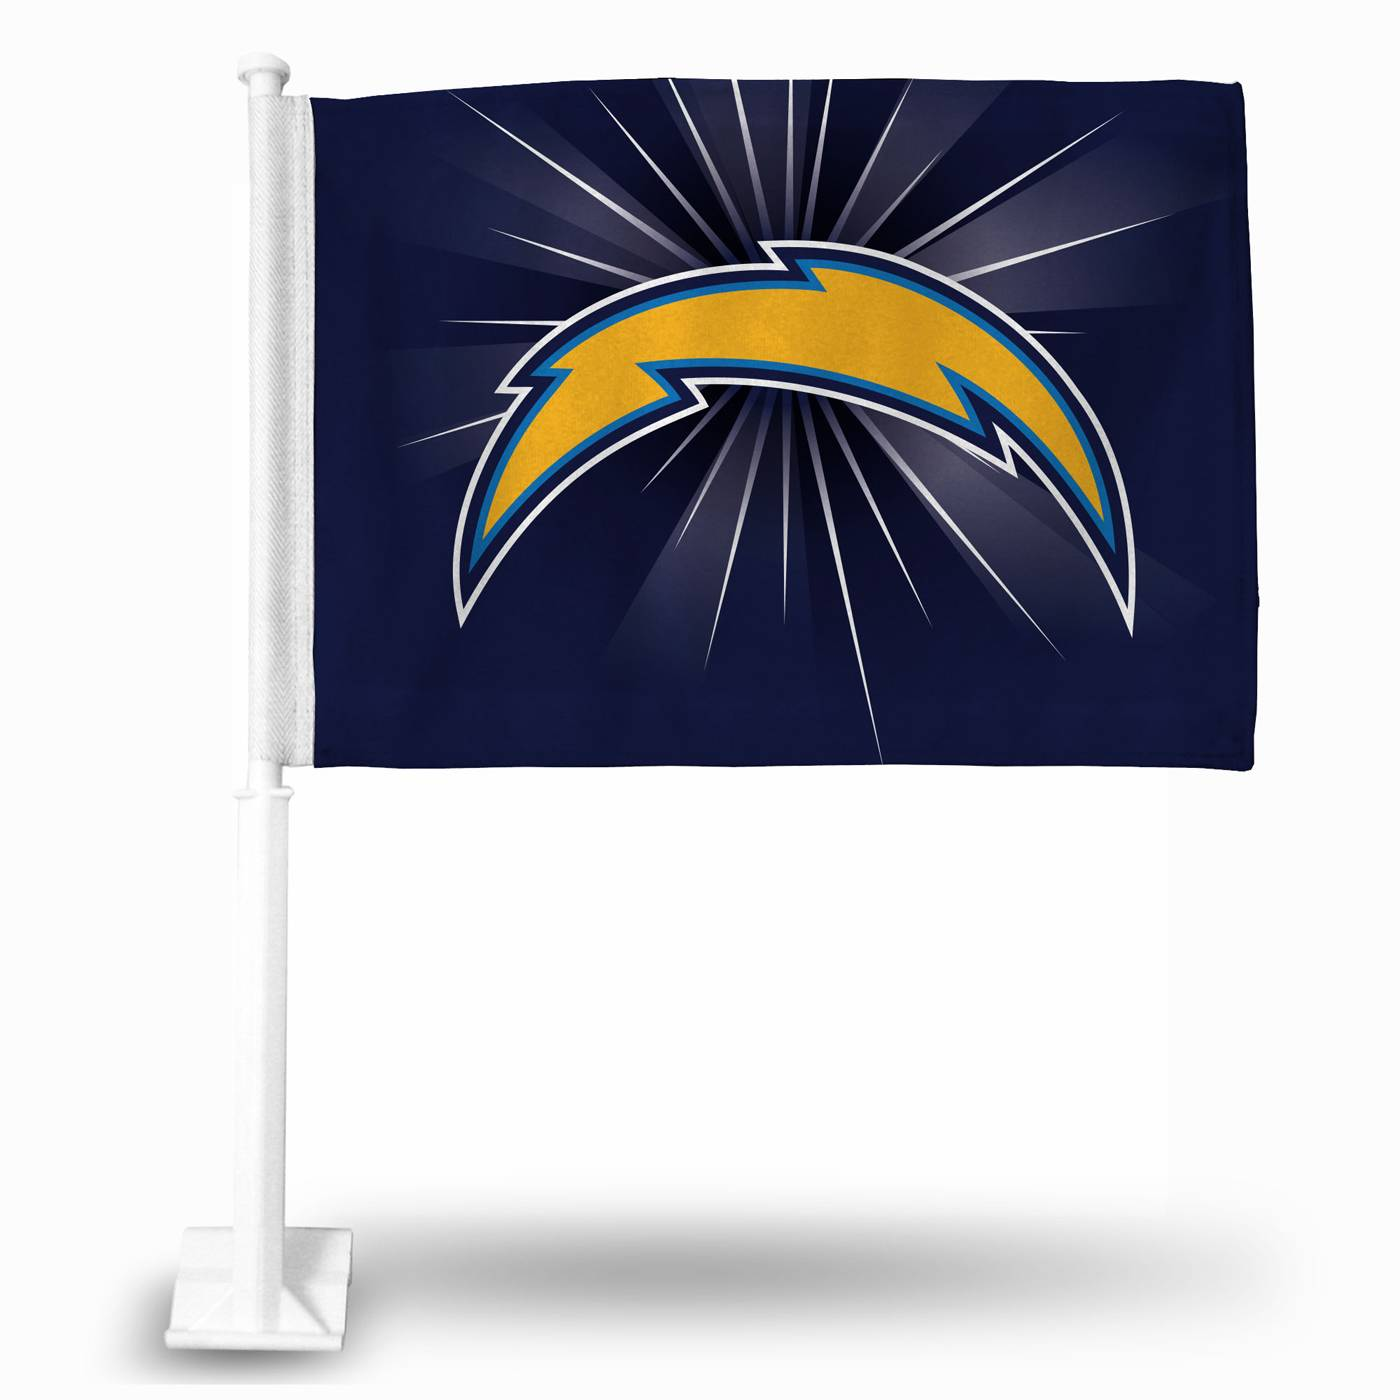 San Diego Chargers Car Accessories: San Diego Chargers Car Flag